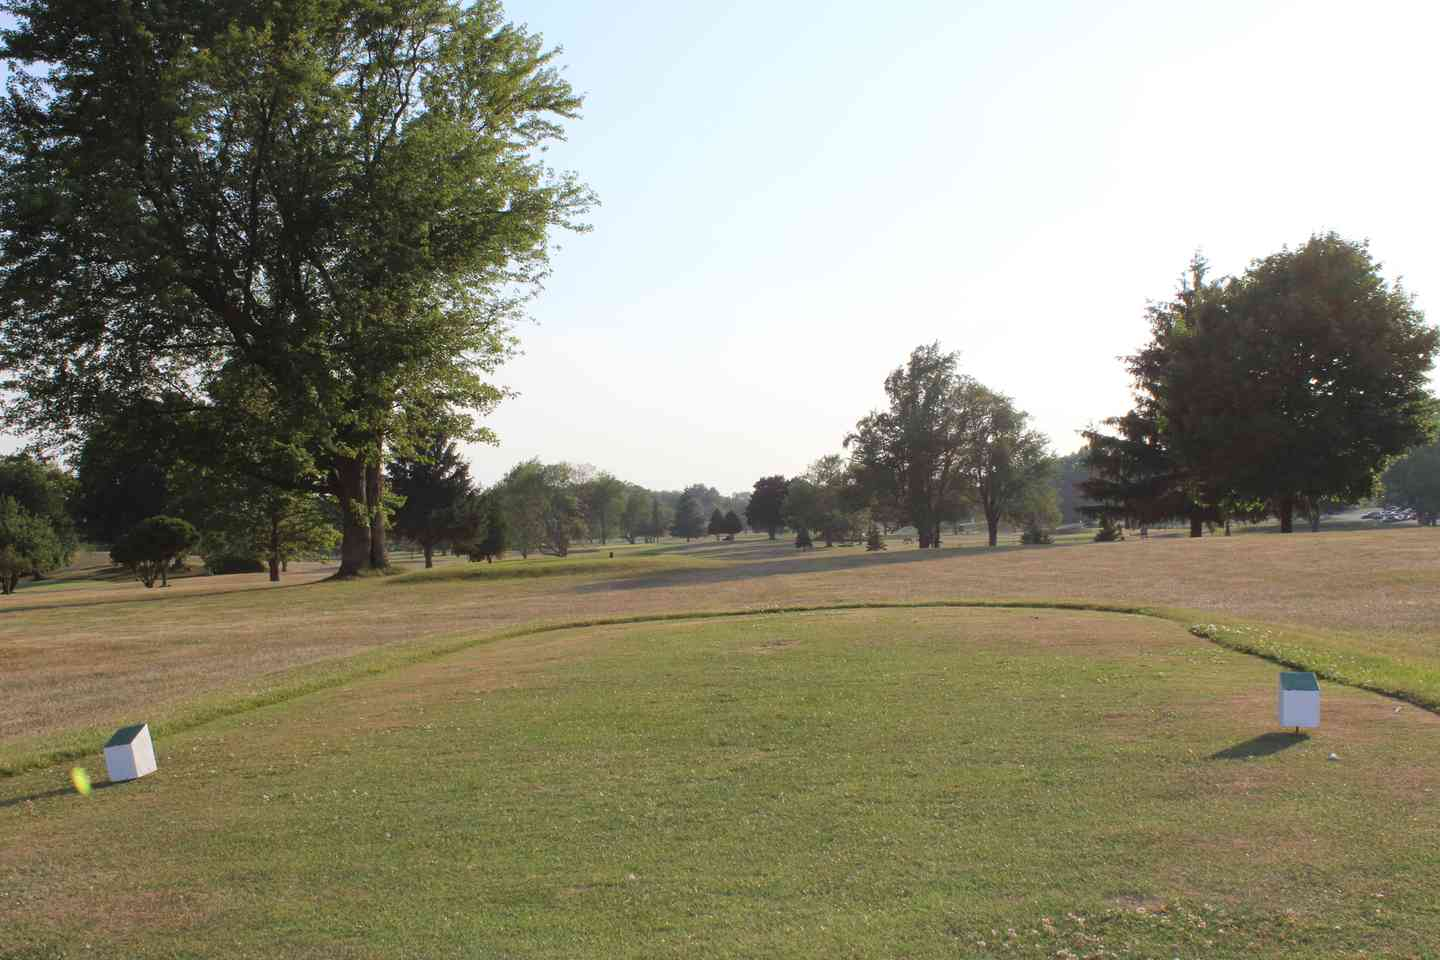 View of hole 18